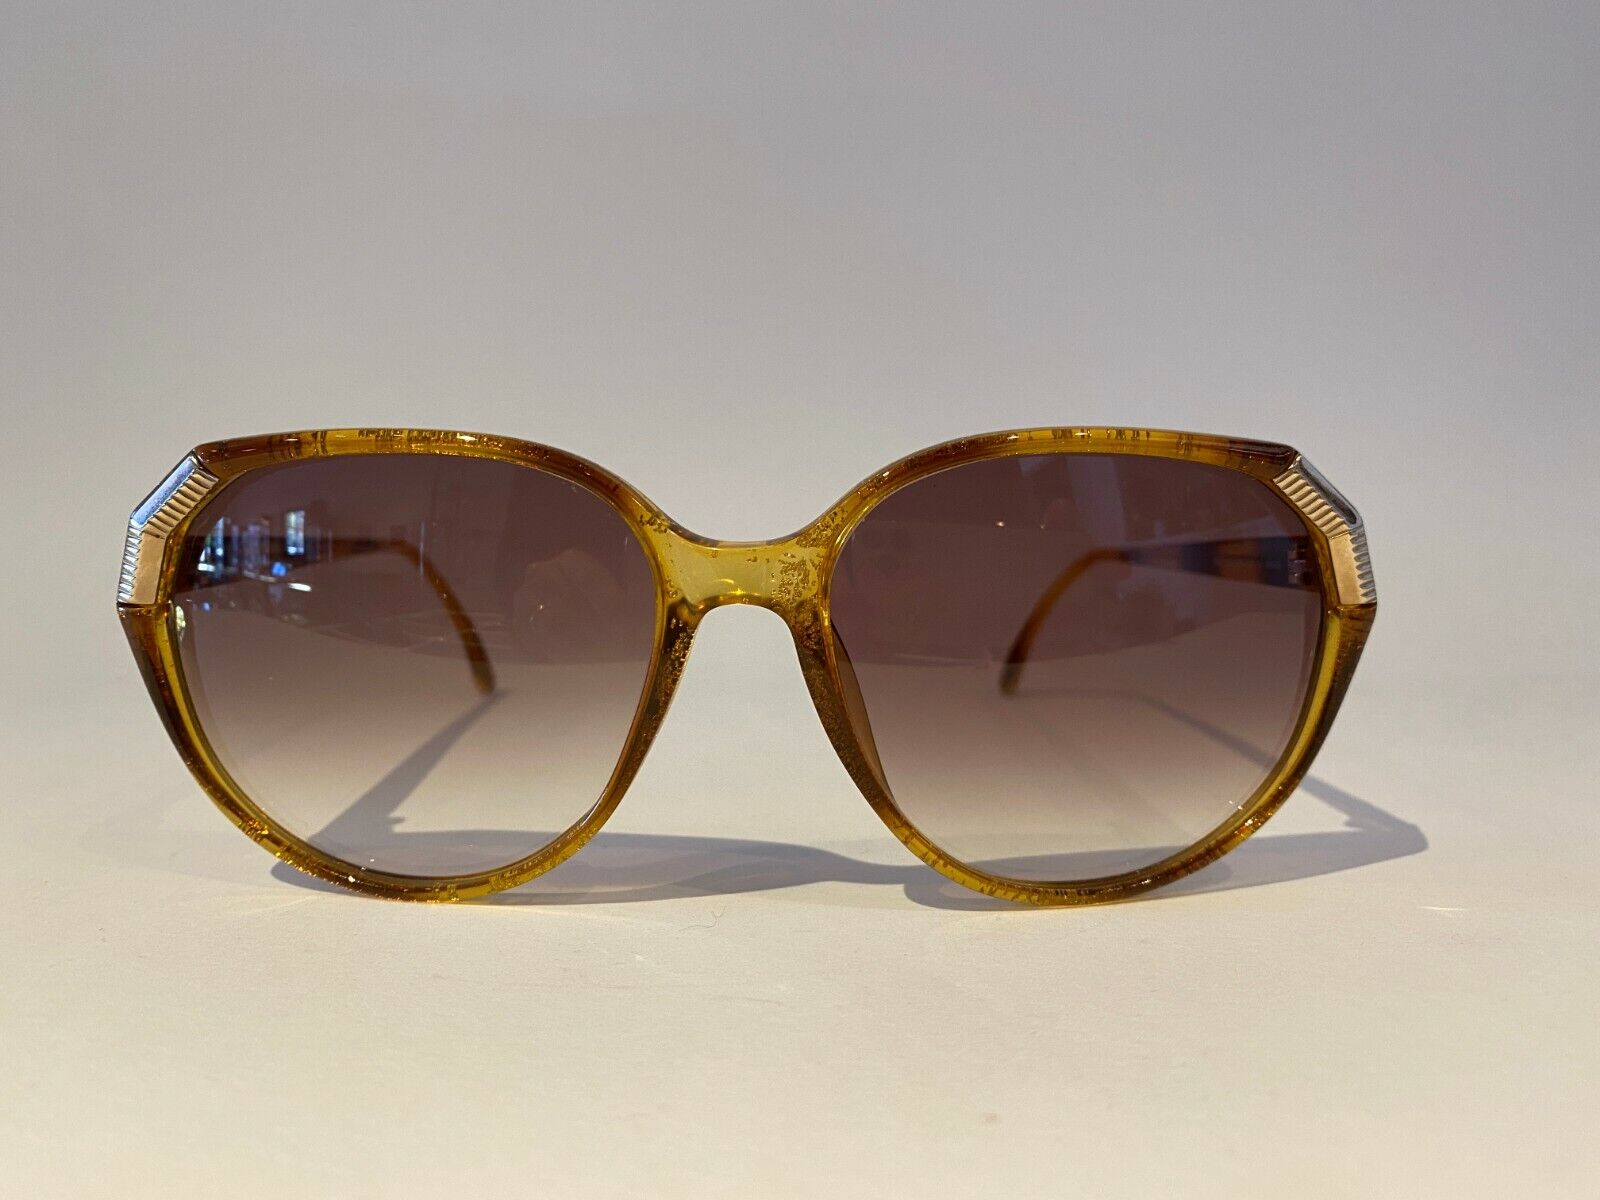 NOS Vintage Christian Dior #2495-11 Women's Sunglasses with gold sparkles